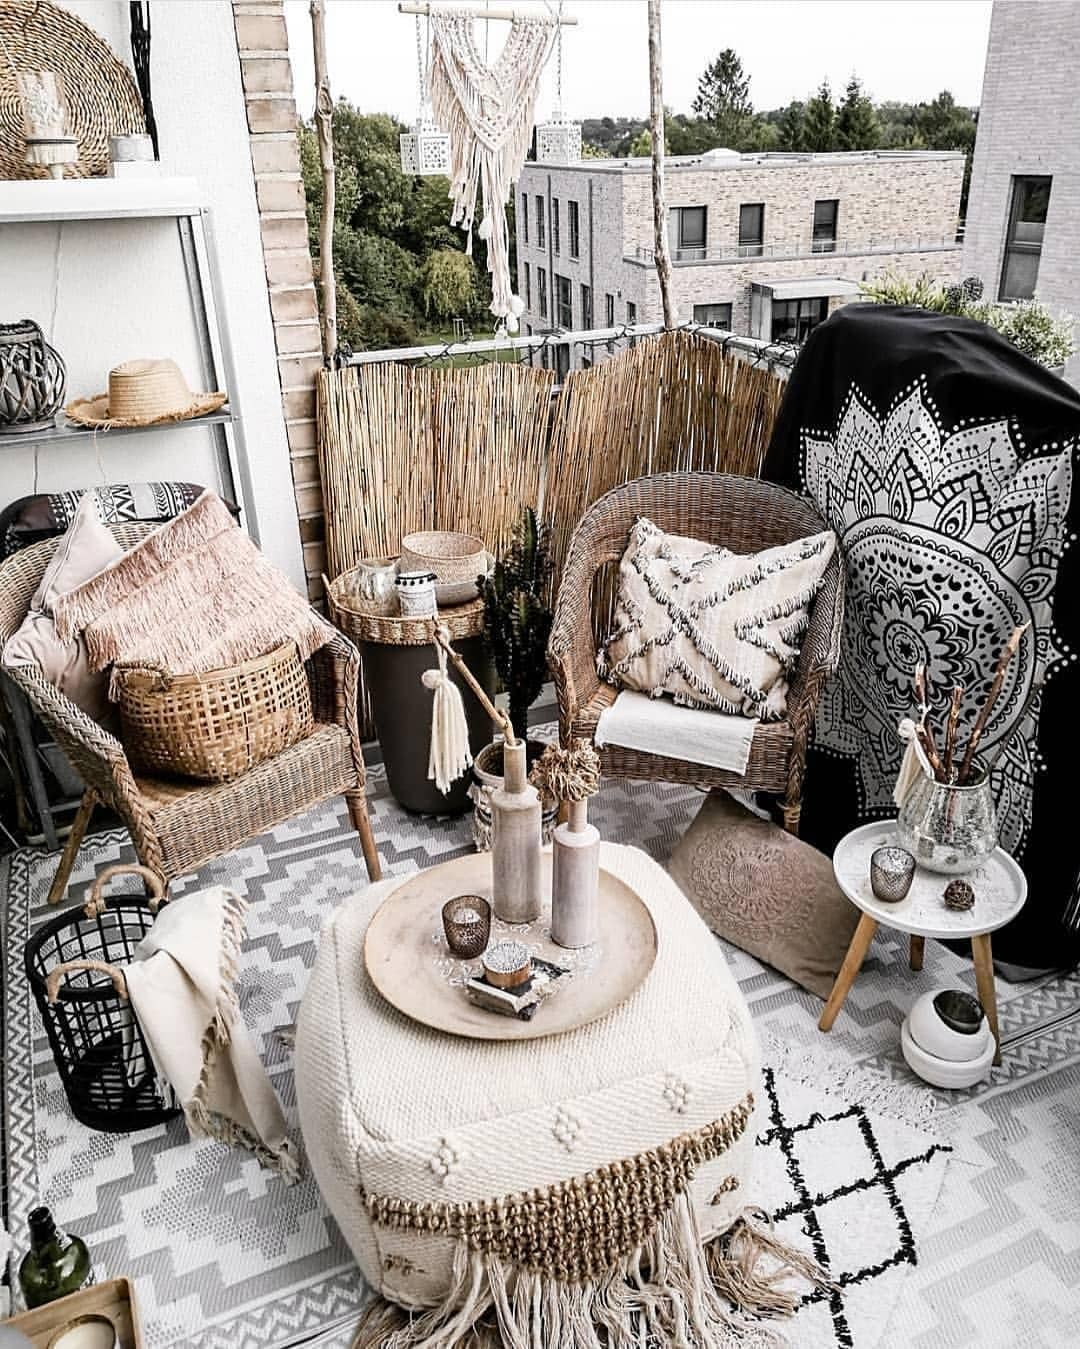 Neutral Bohemian Patio Ideas | Wicker Furniture | The Best Decorated Small Outdoor Balconies on Pinterest | Small Patio Decor Ideas | Boho Apartment Patio Inspiration | Outdoor Furniture Inspiration